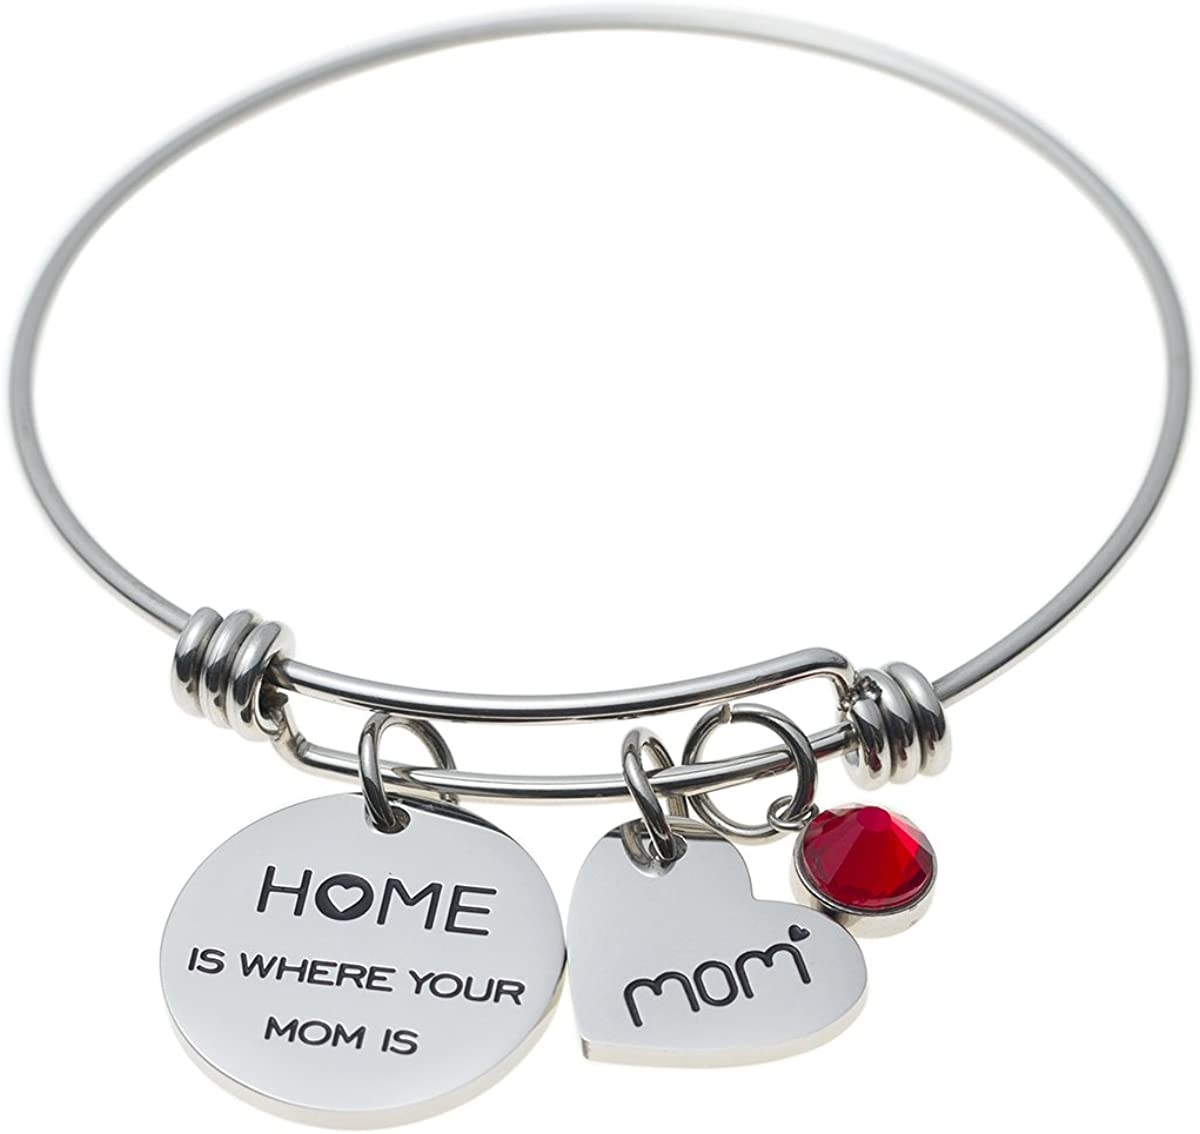 Jewelady Mothers Gift Message Charm Bracelet Stainless Steel Expandable Wire Bangle for Mom